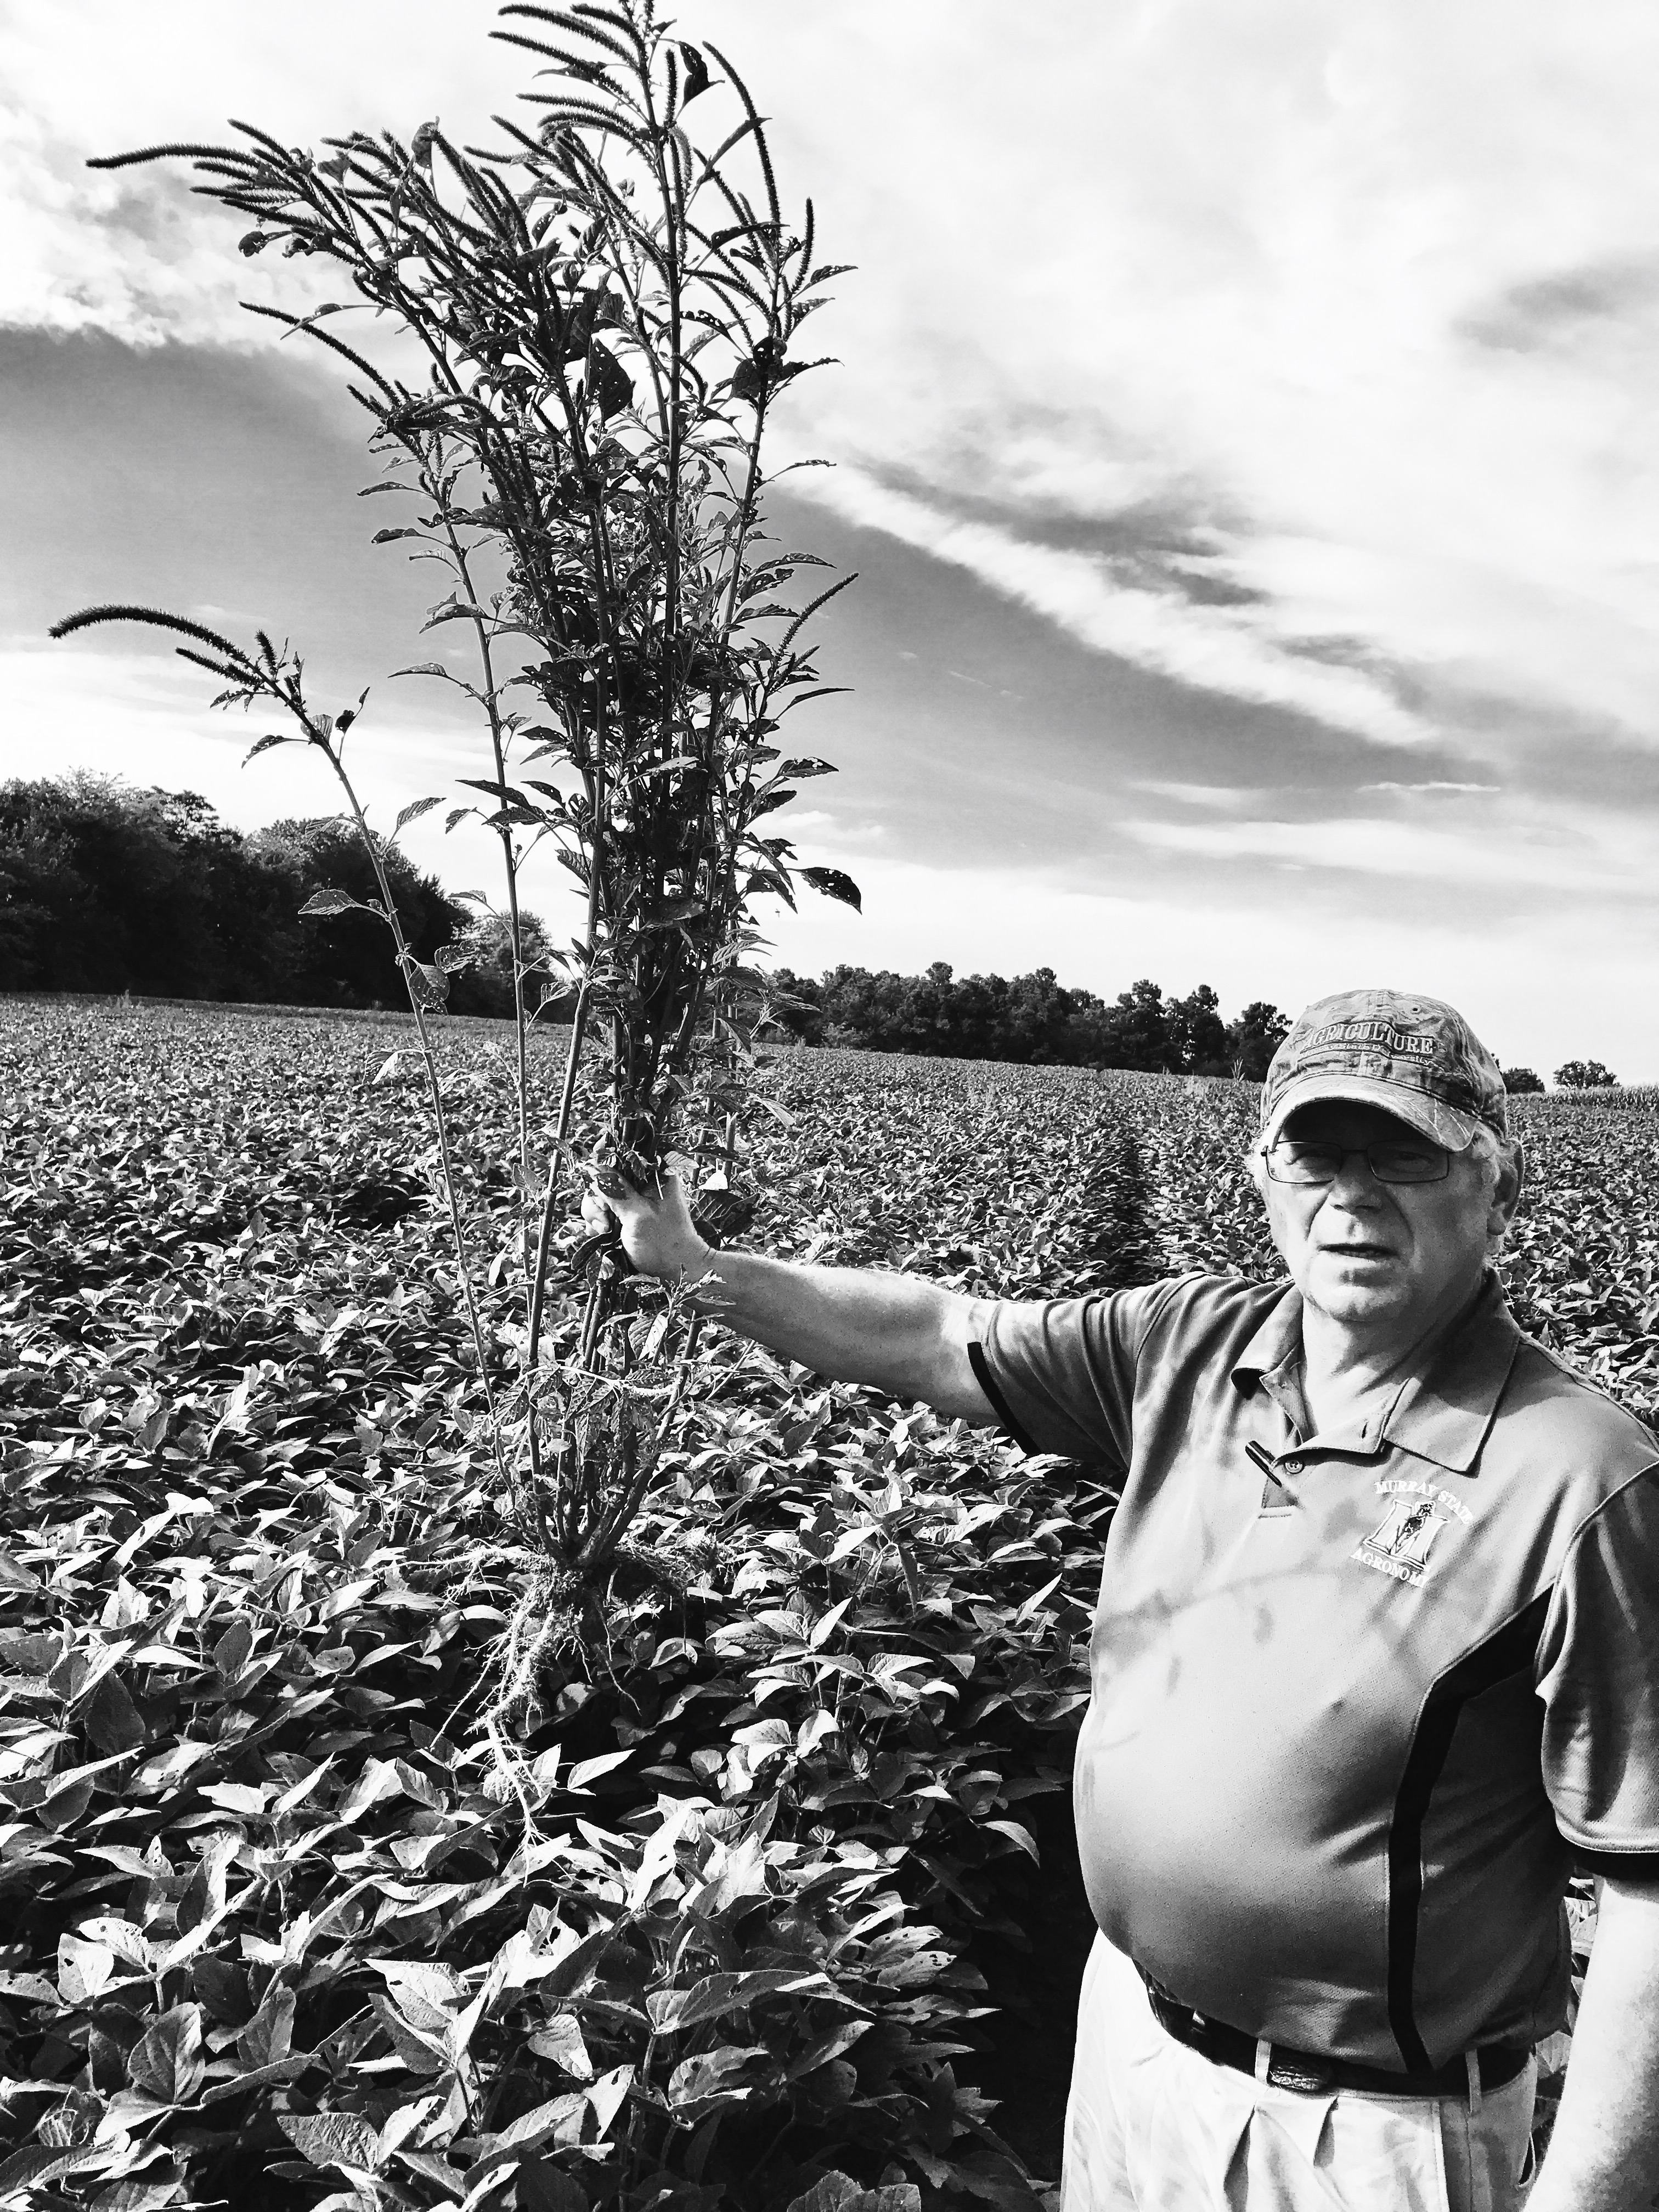 David Ferguson pulls Palmer Ameranth from the university soybean crop